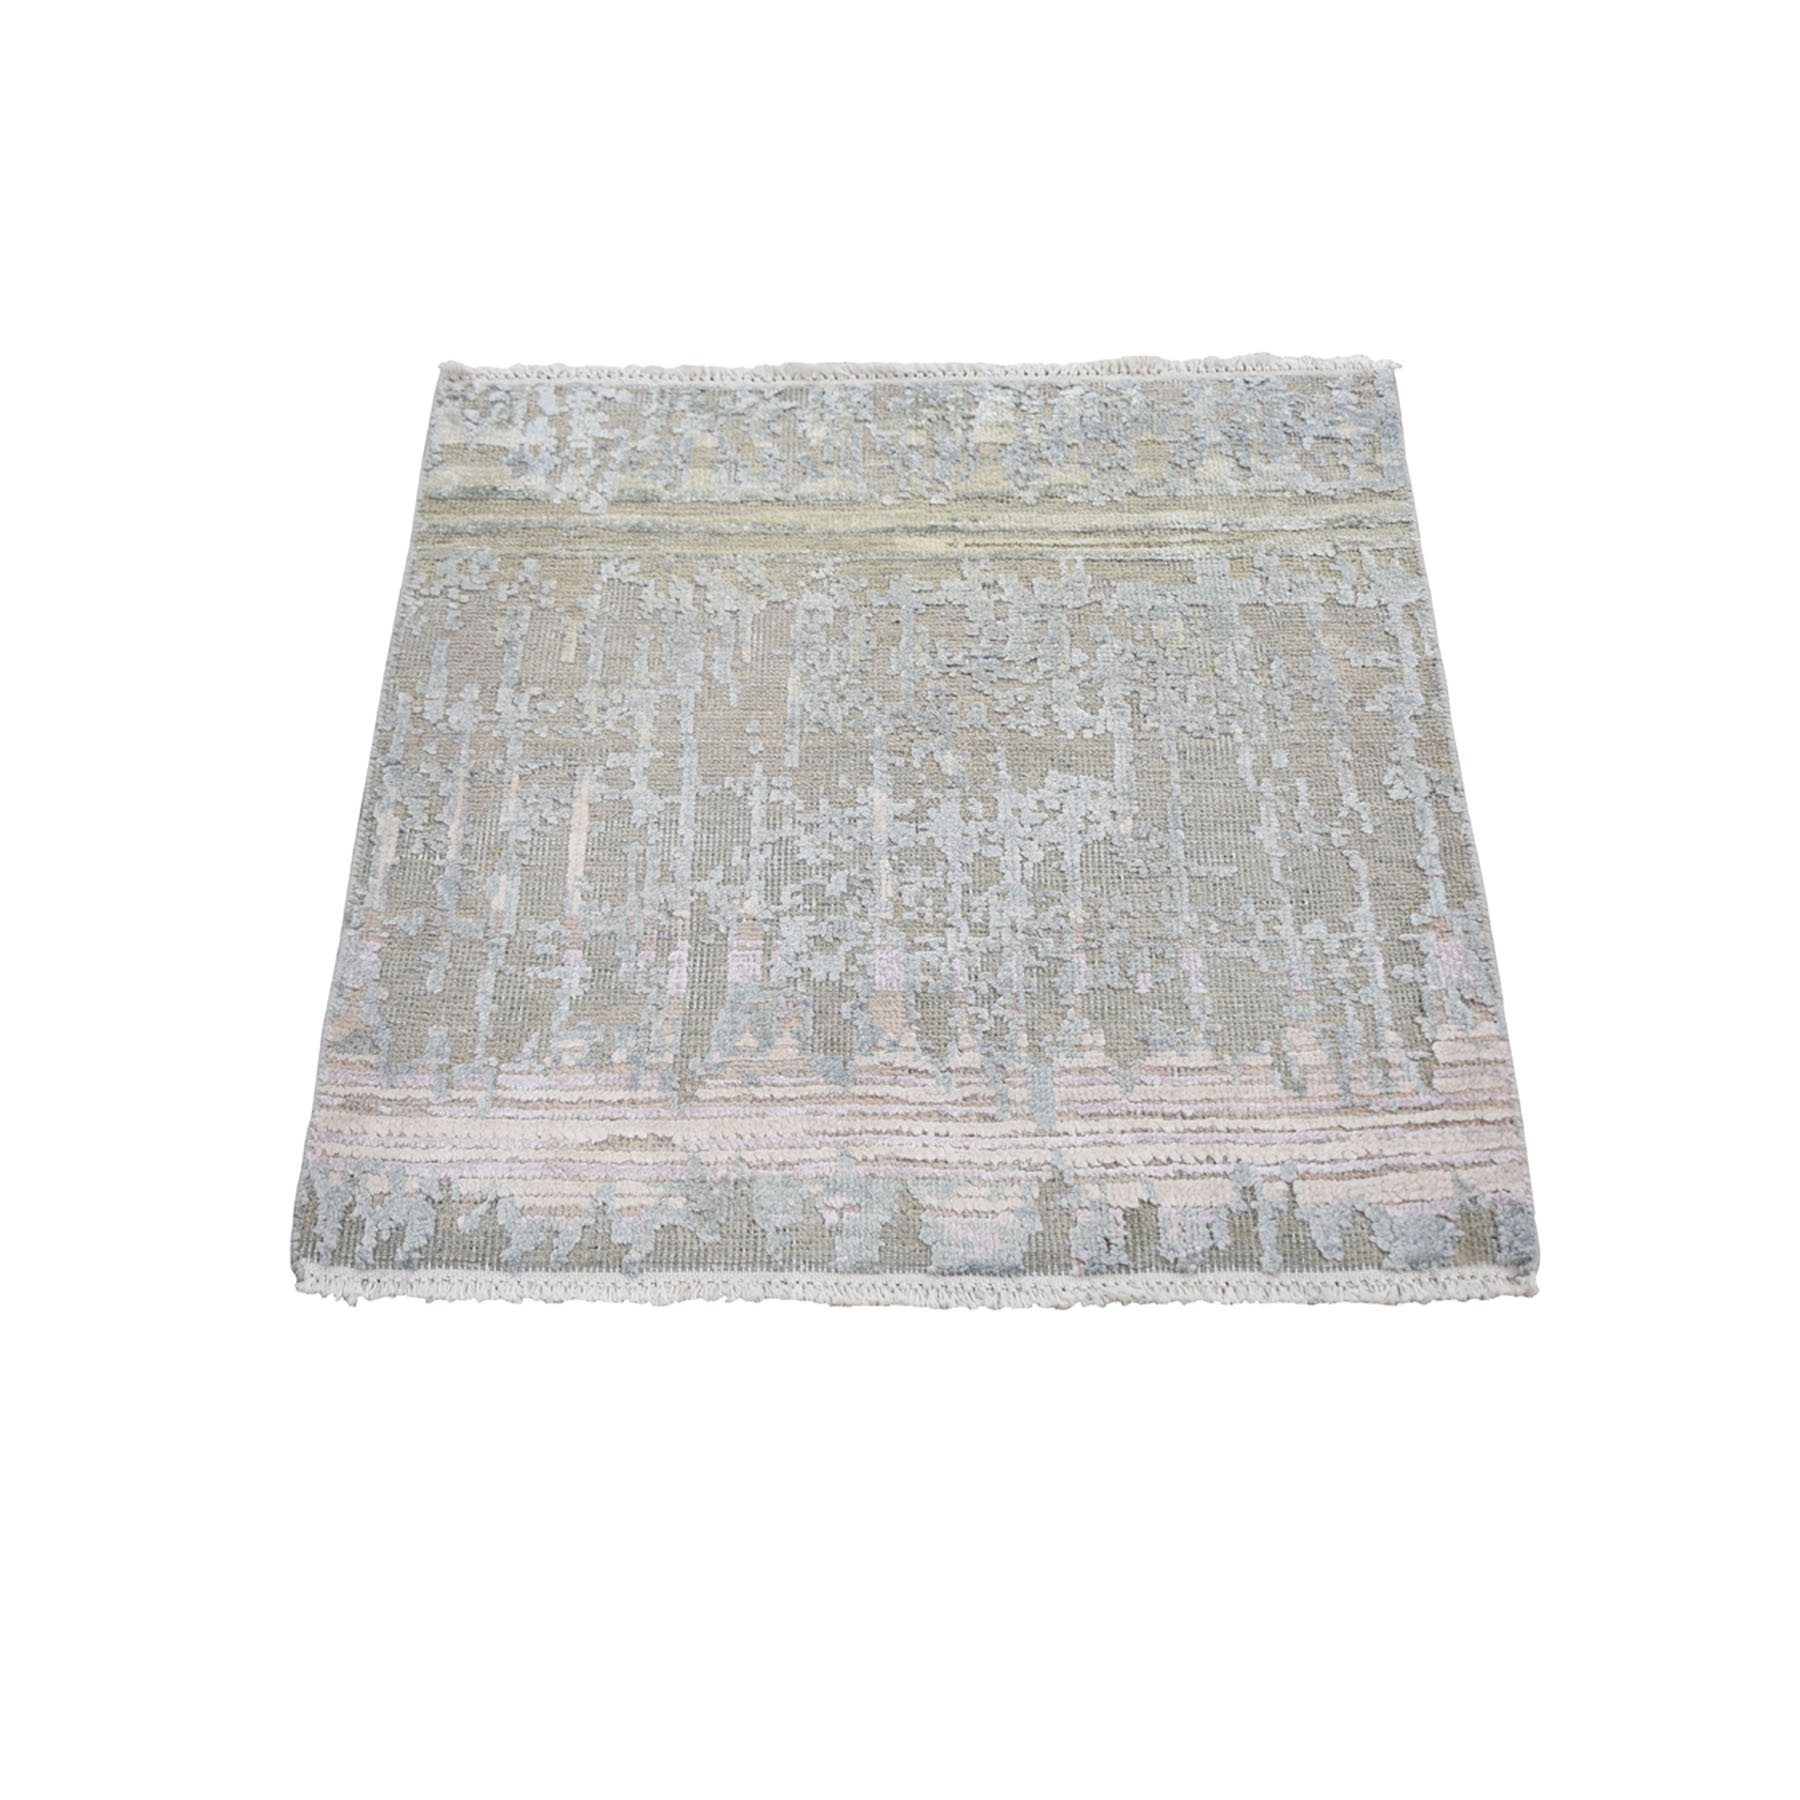 2'X2' Sampler Pure Silk With Textured Wool Hand Knotted Oriental Rug moae9abc